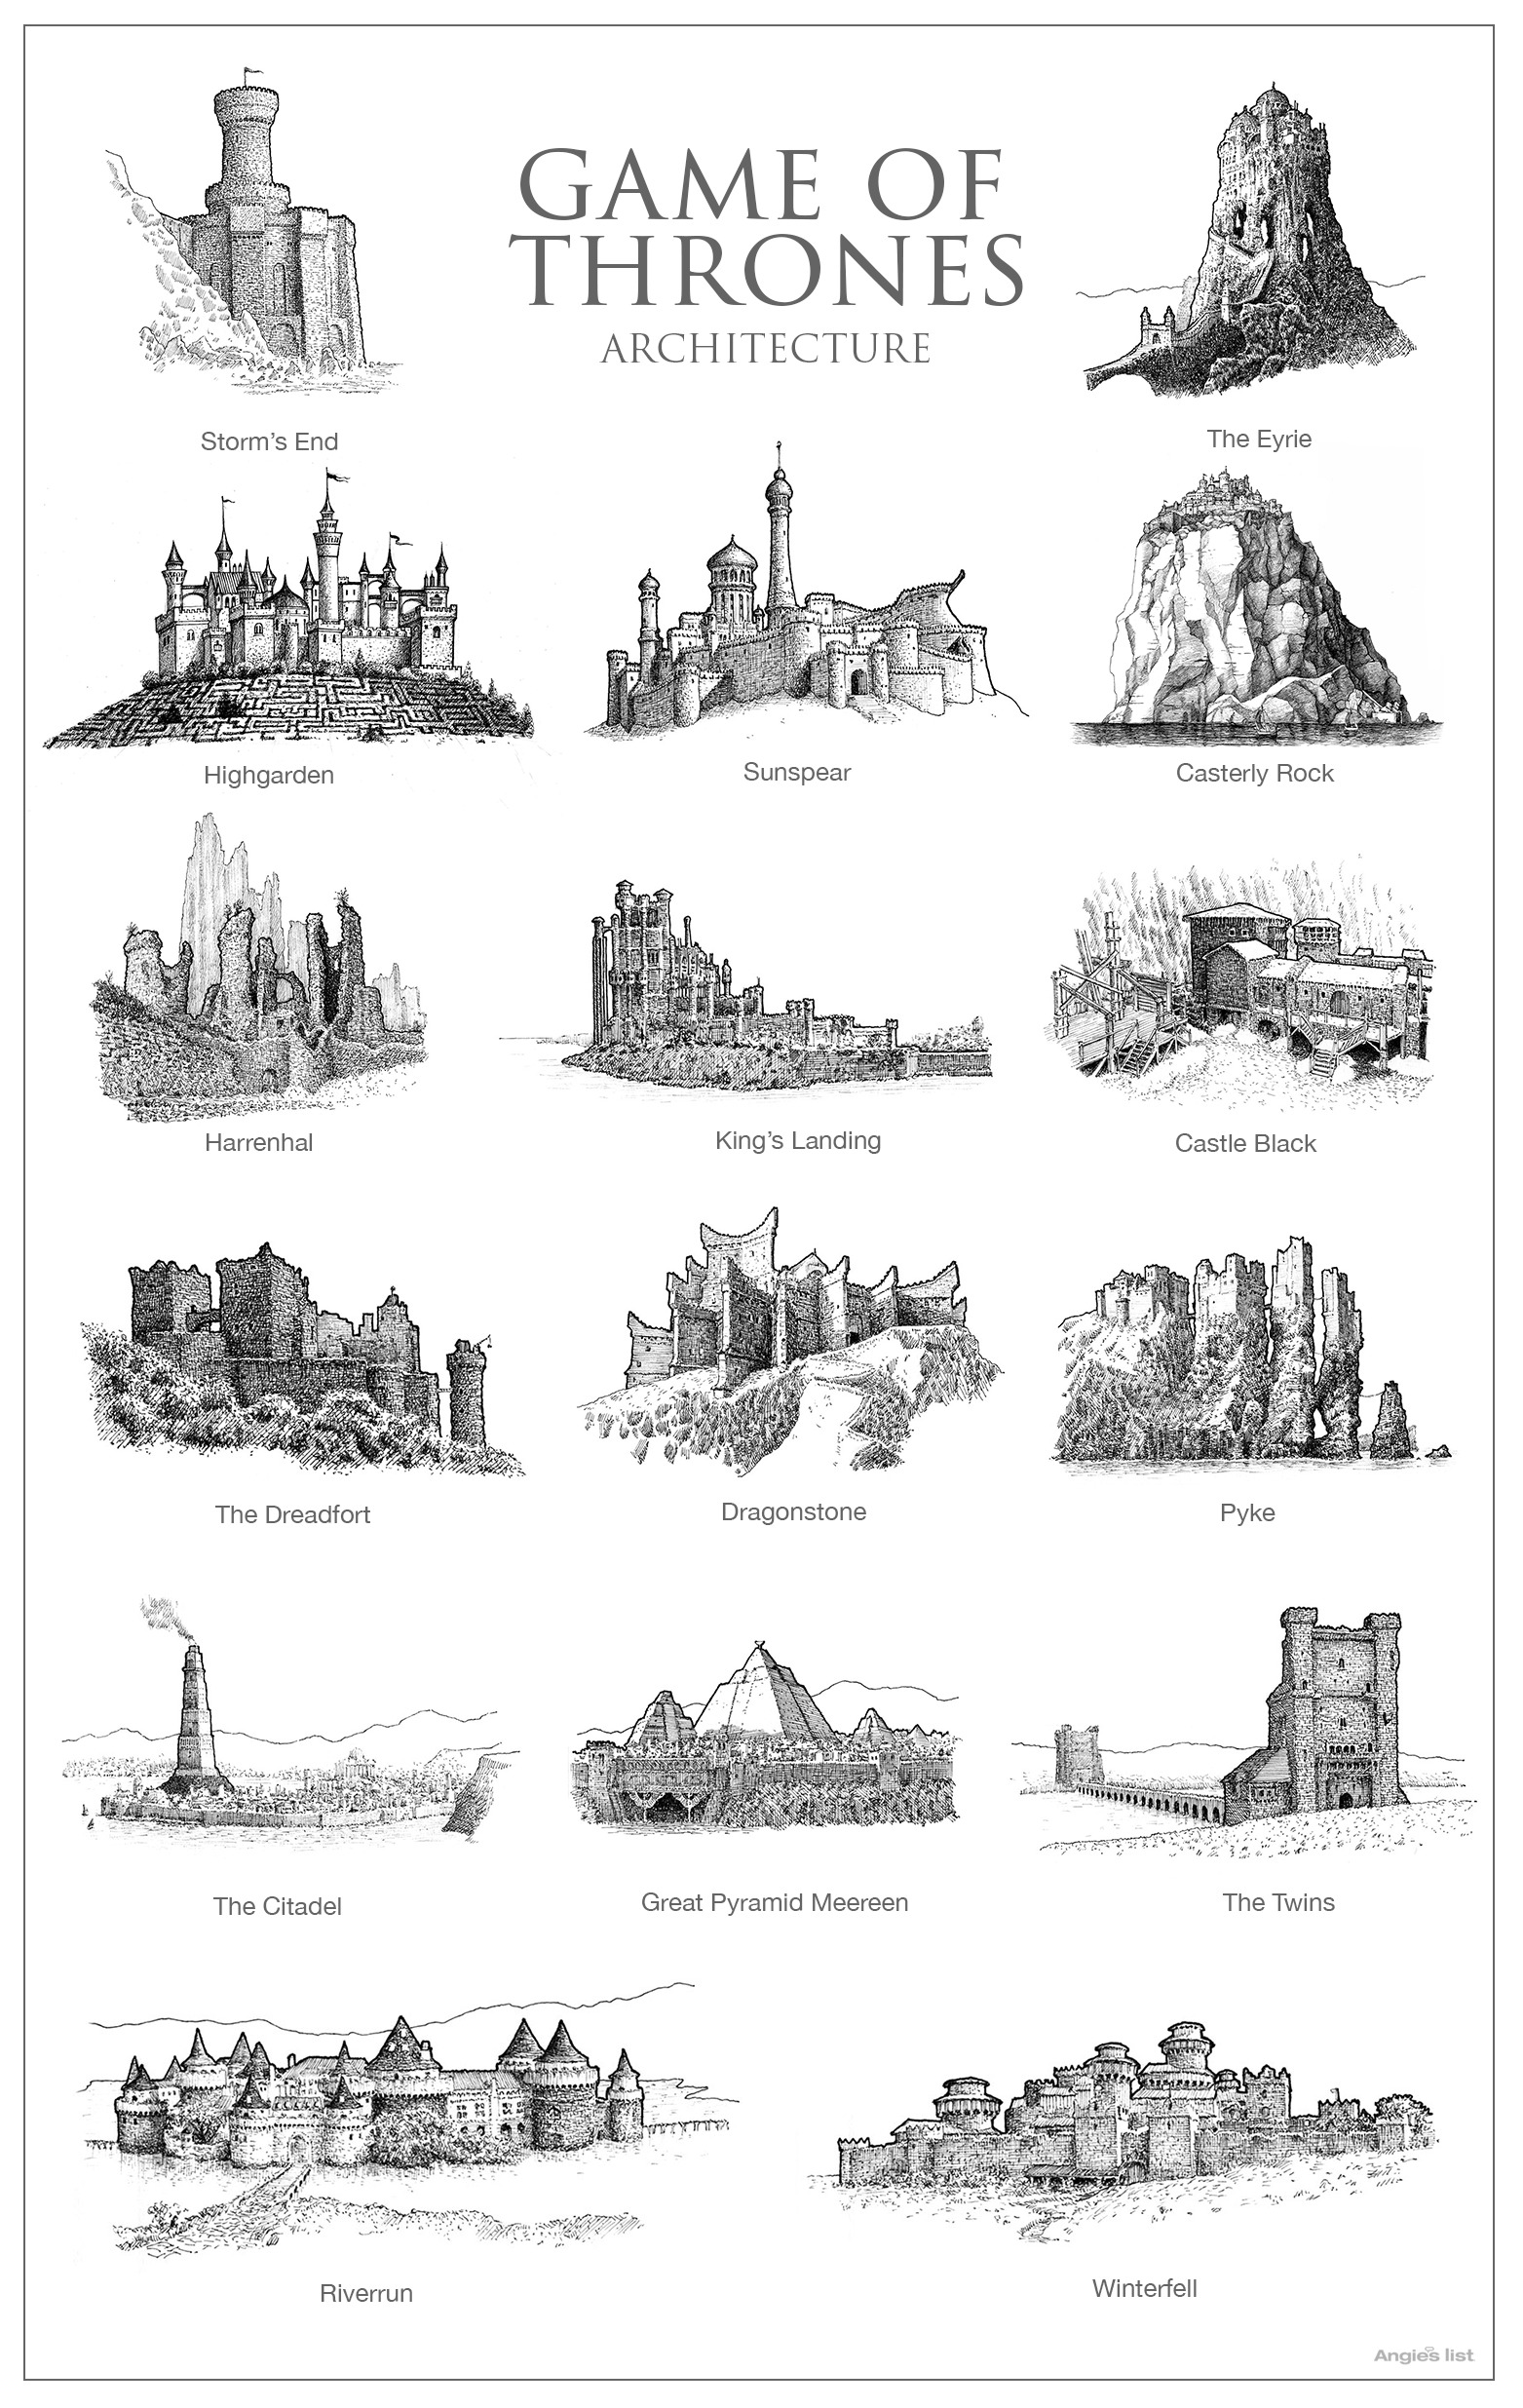 Hand-drawn architecture for Game of Thrones